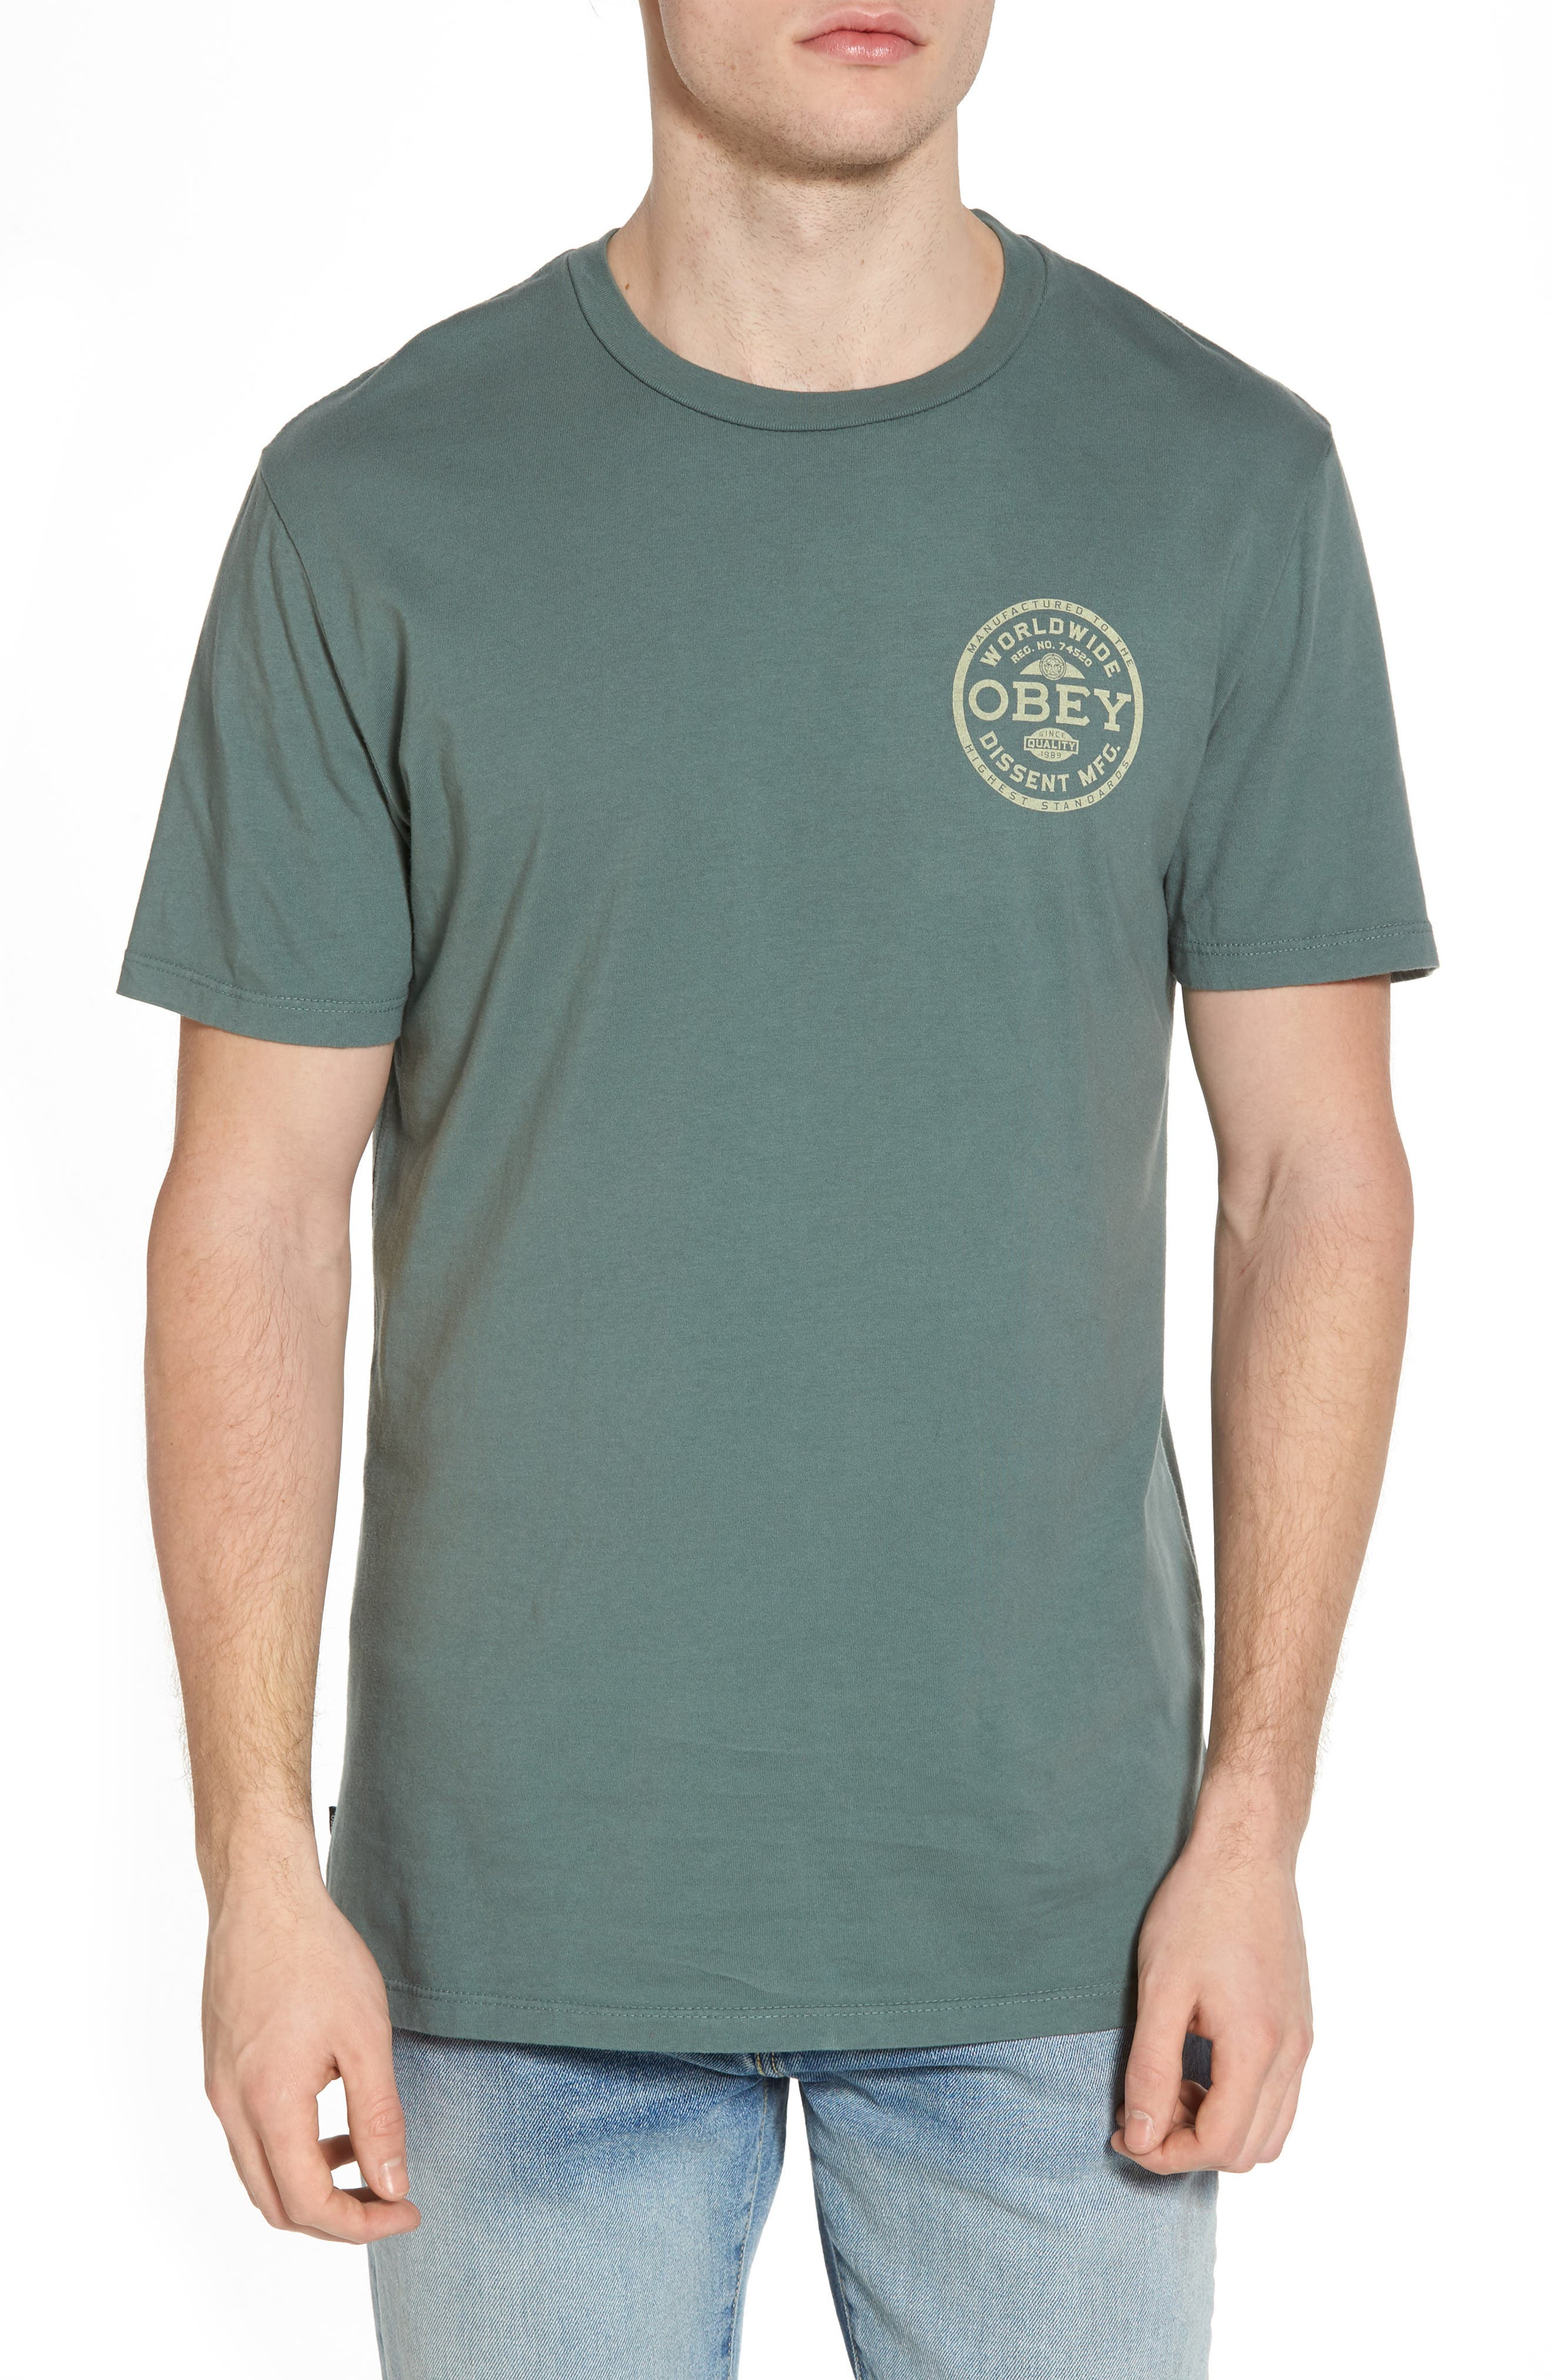 Dissent Standards T-Shirt,                         Main,                         color,